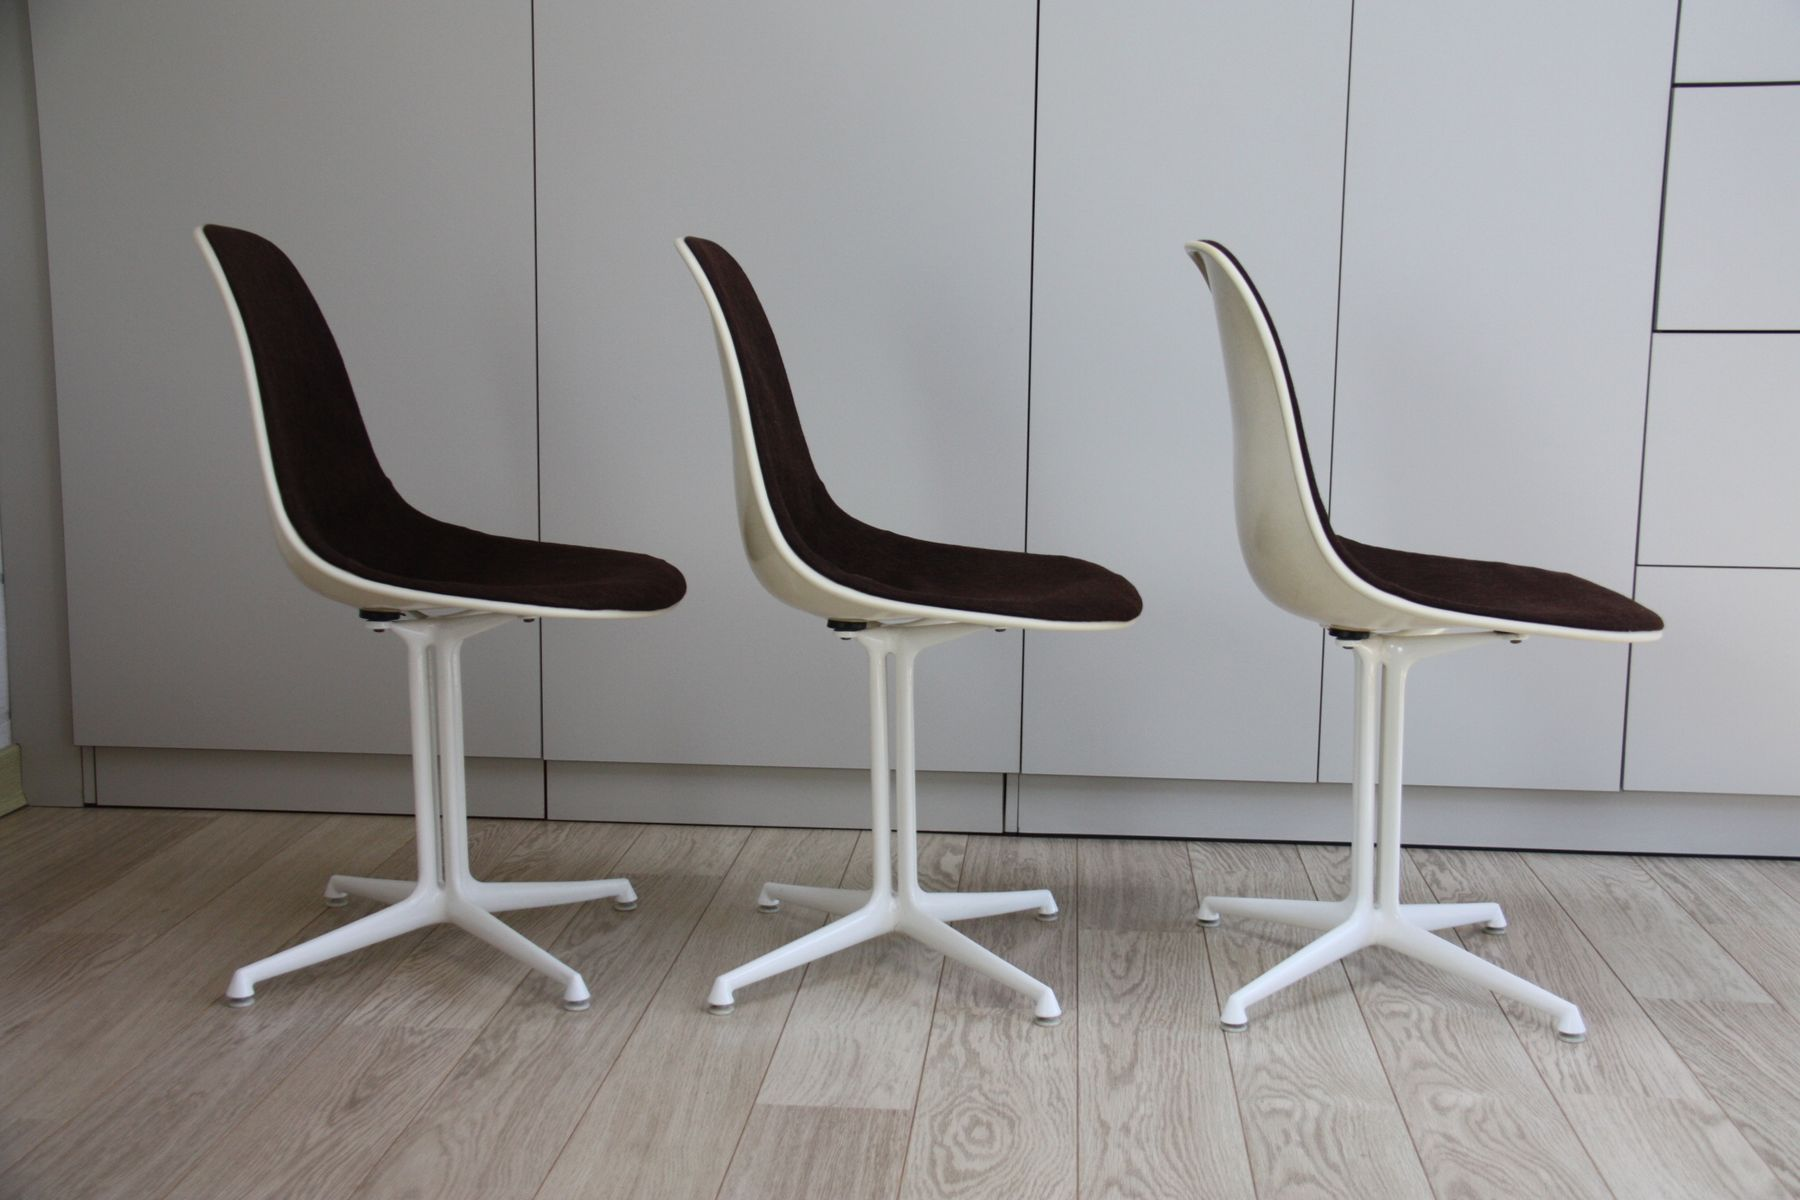 La Fonda Chairs by Charles and Ray Eames for Herman Miller 1961